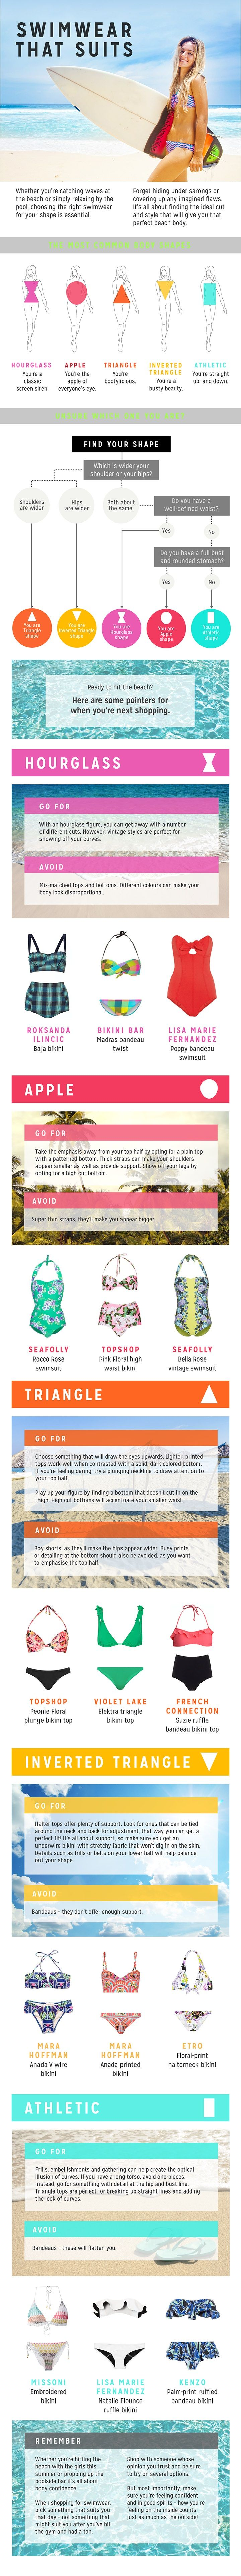 Swimwear That Suits